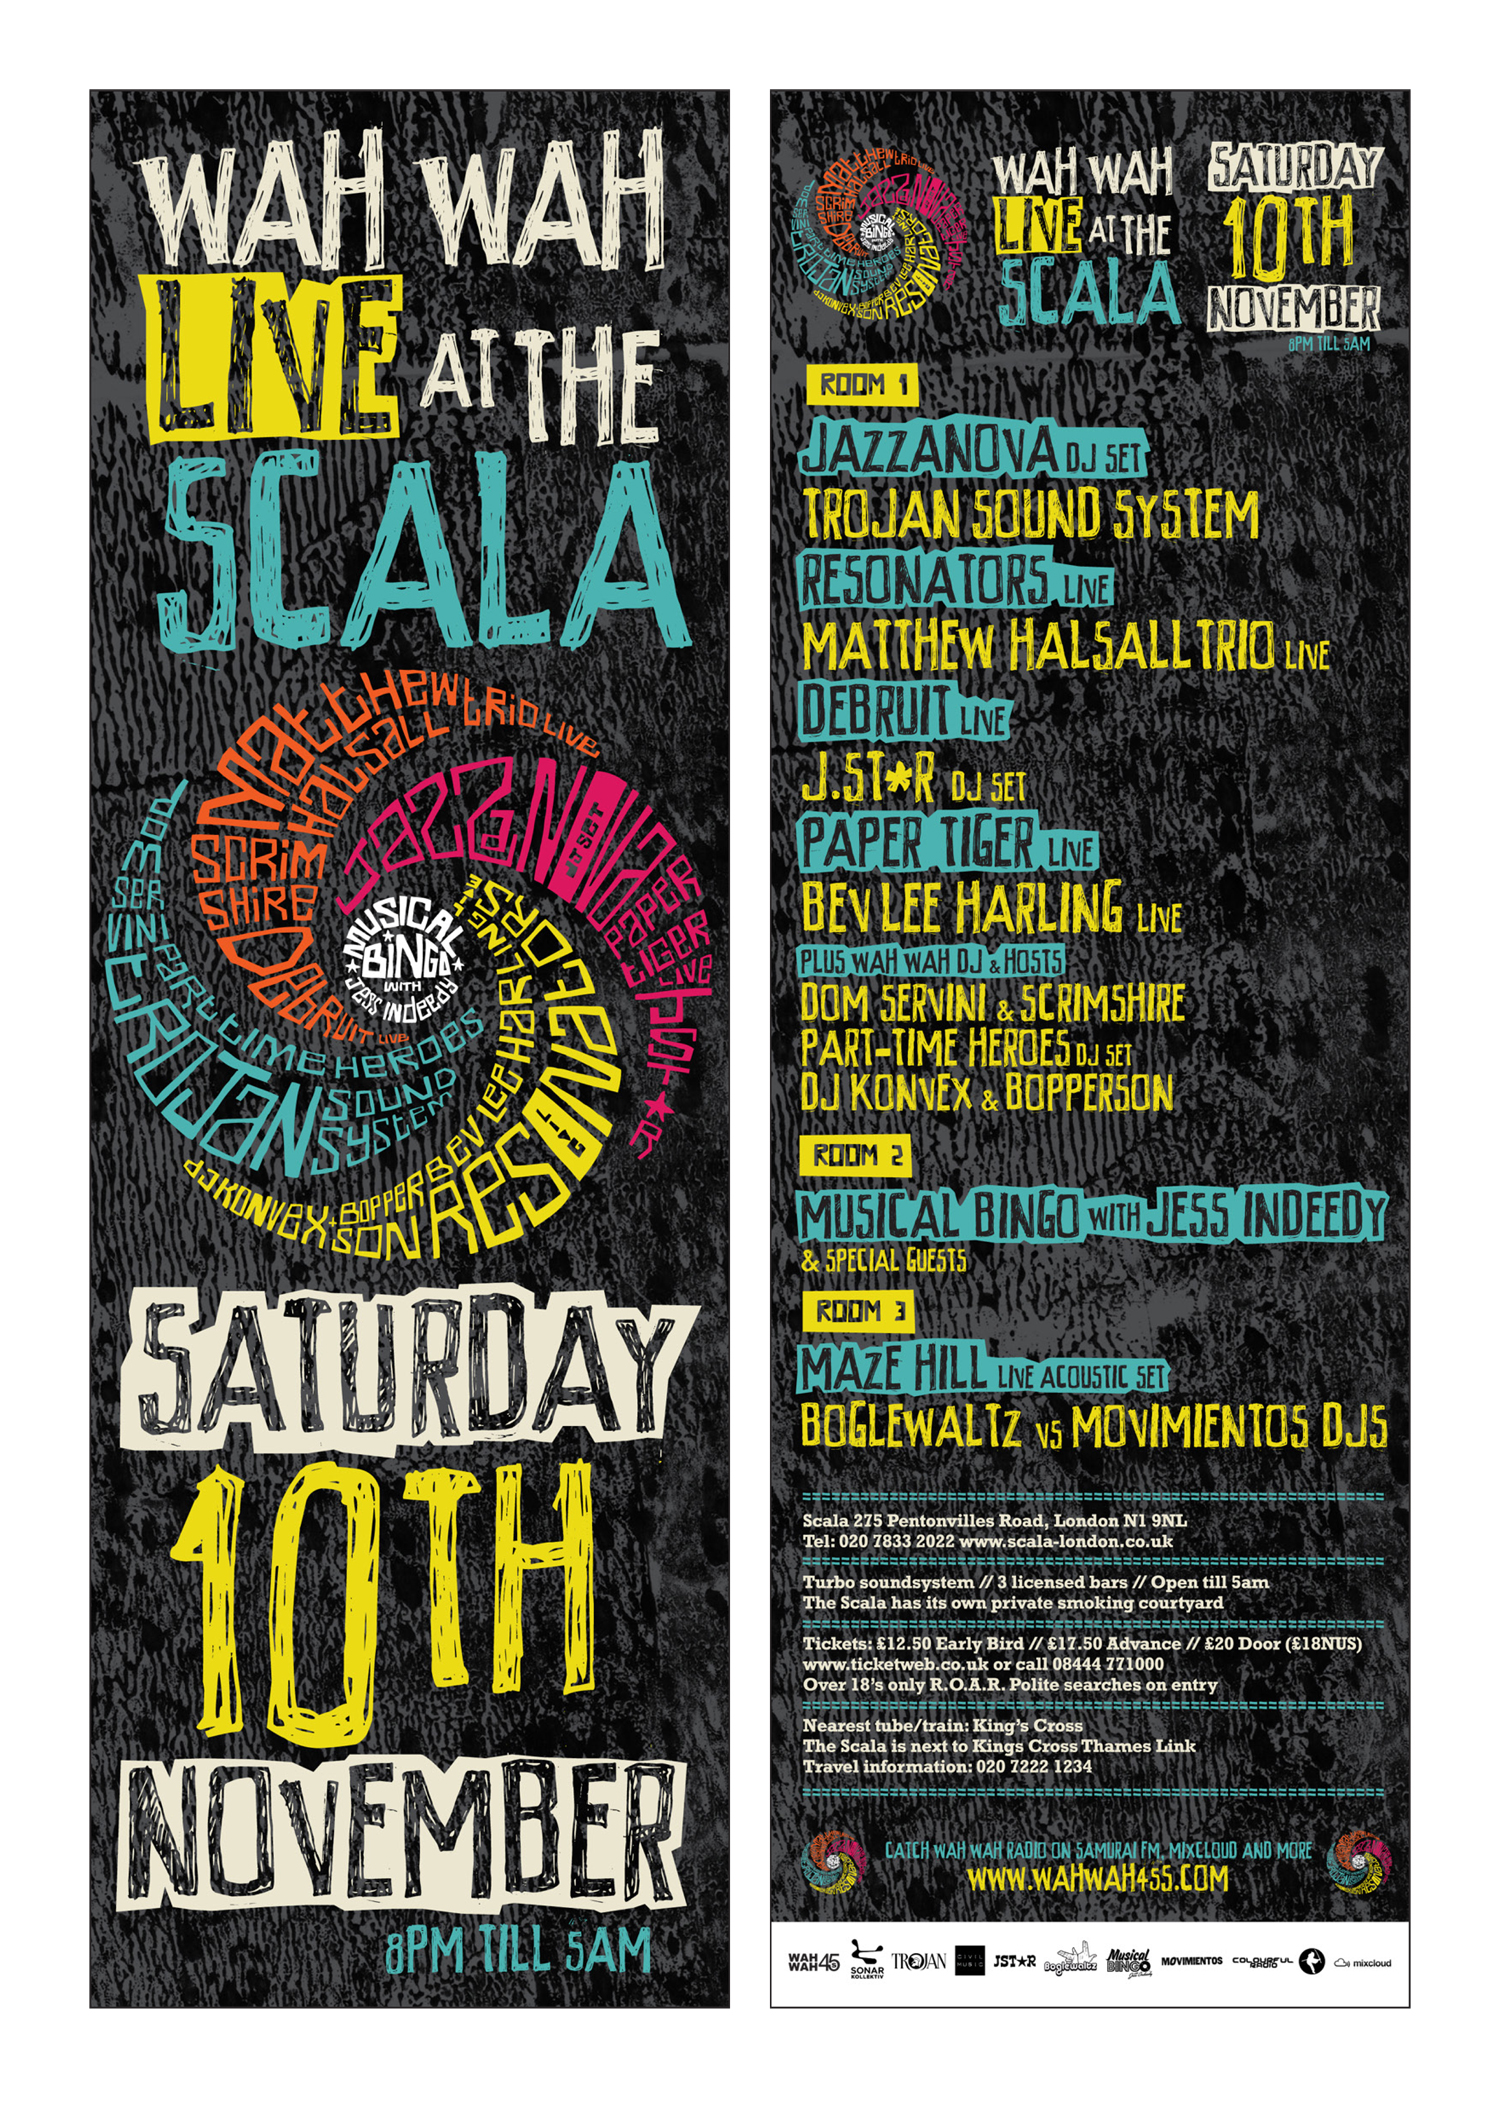 wahwah45-flyer-scala.jpg